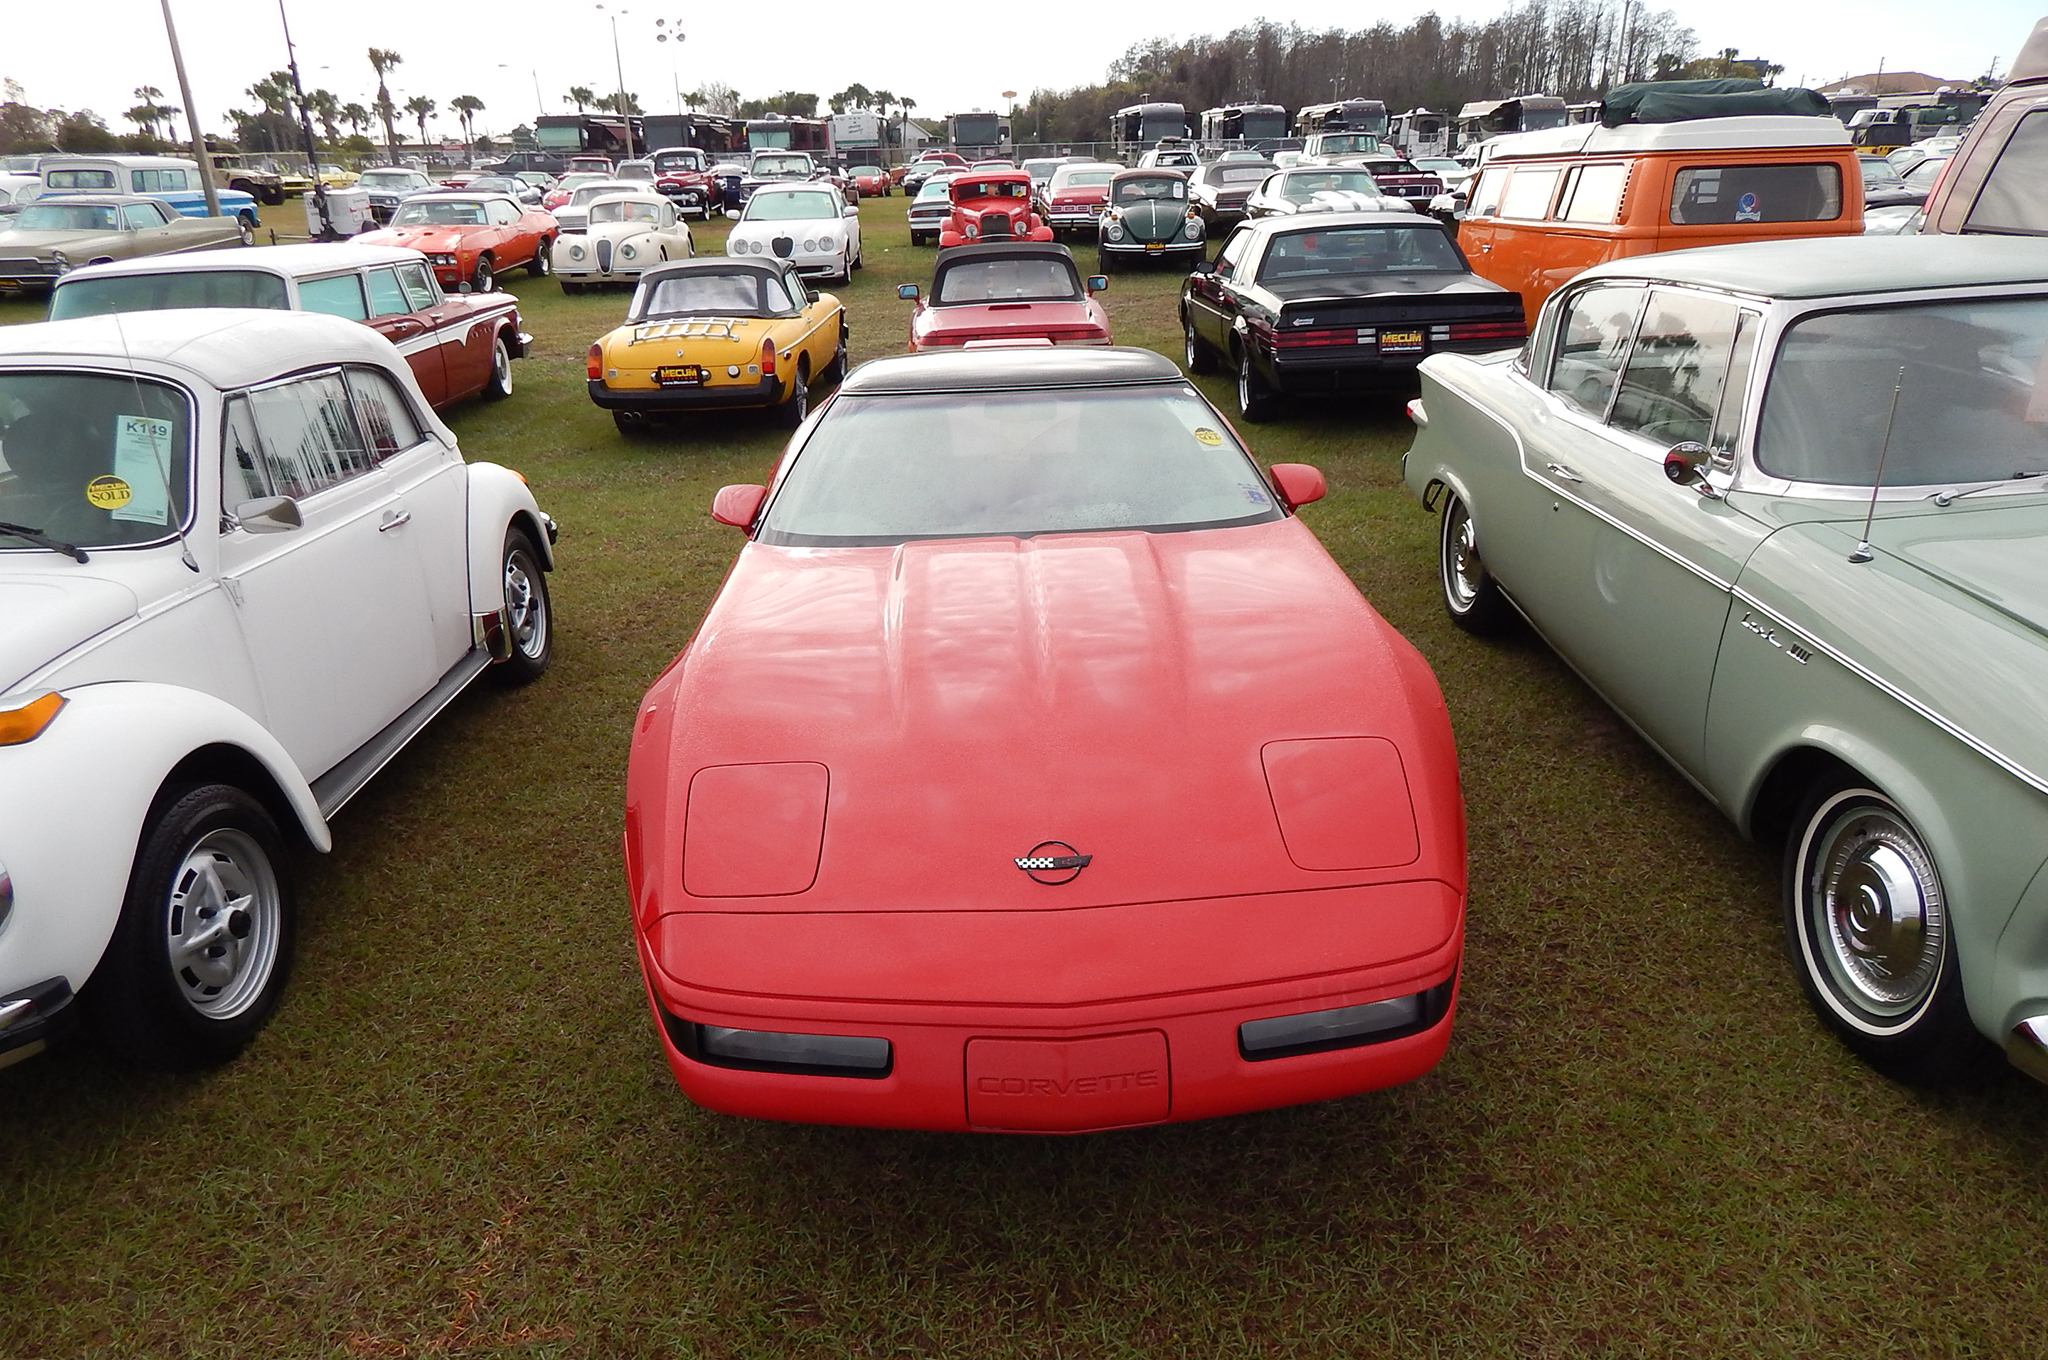 Don't think that only Bugs and Studebakers sold for low money. A $7,000 bid bought a 55,000-mile C4 in good condition. The lowest Corvette sale price was another C4 bid to only $5,500.